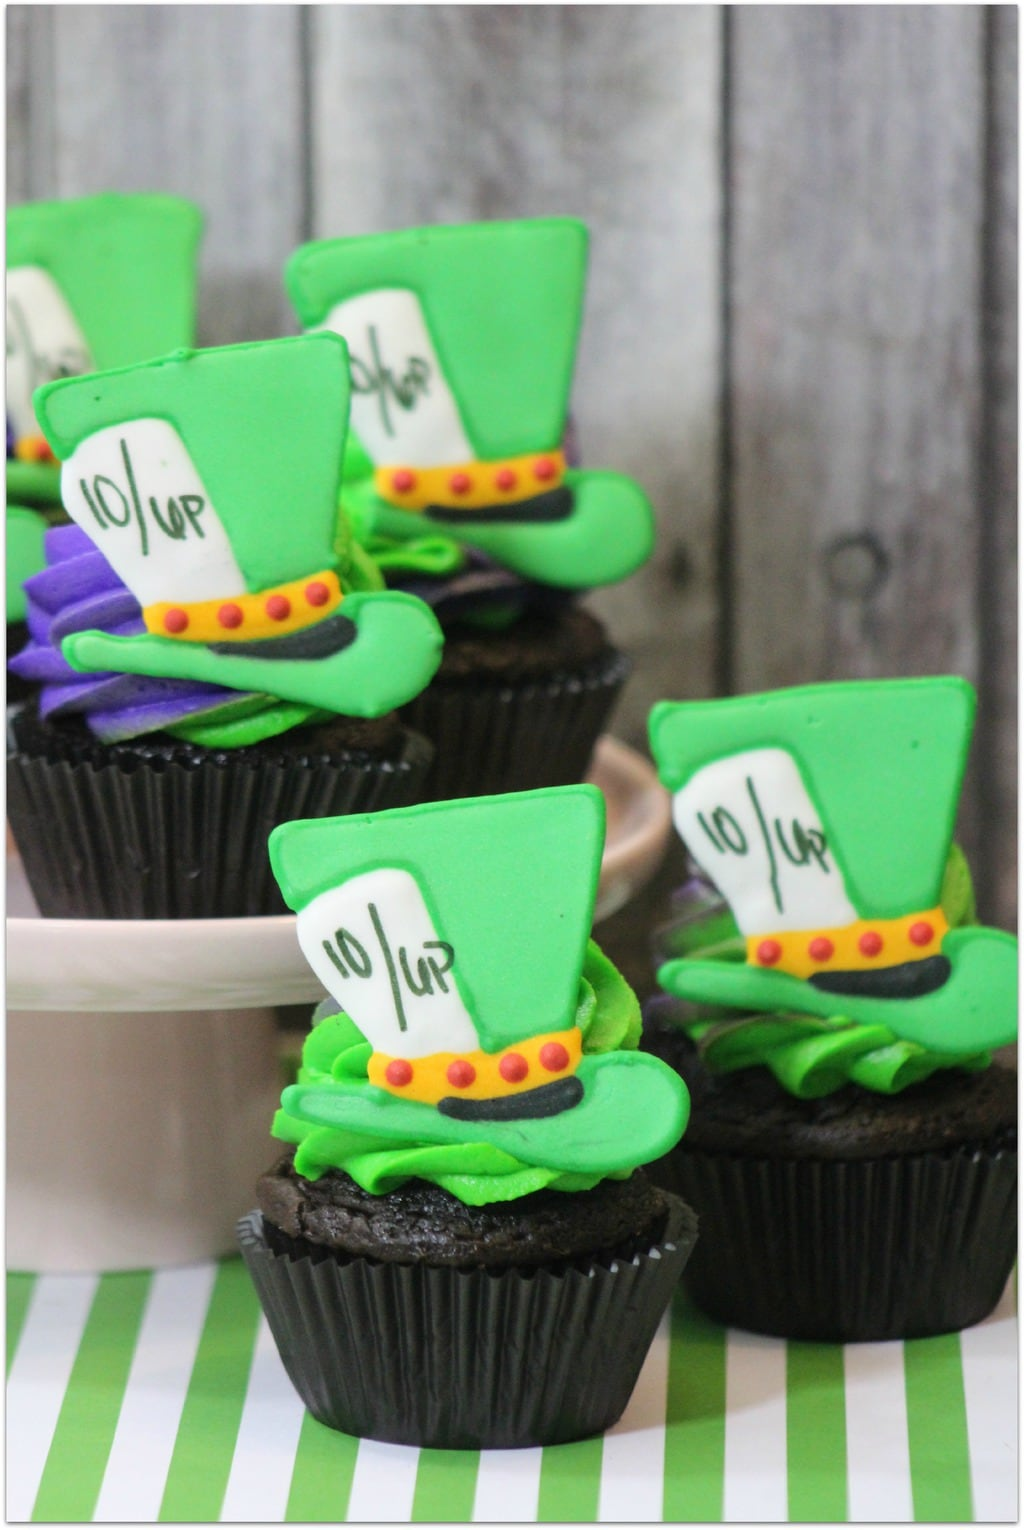 mad hatter cupcakes - photo #40